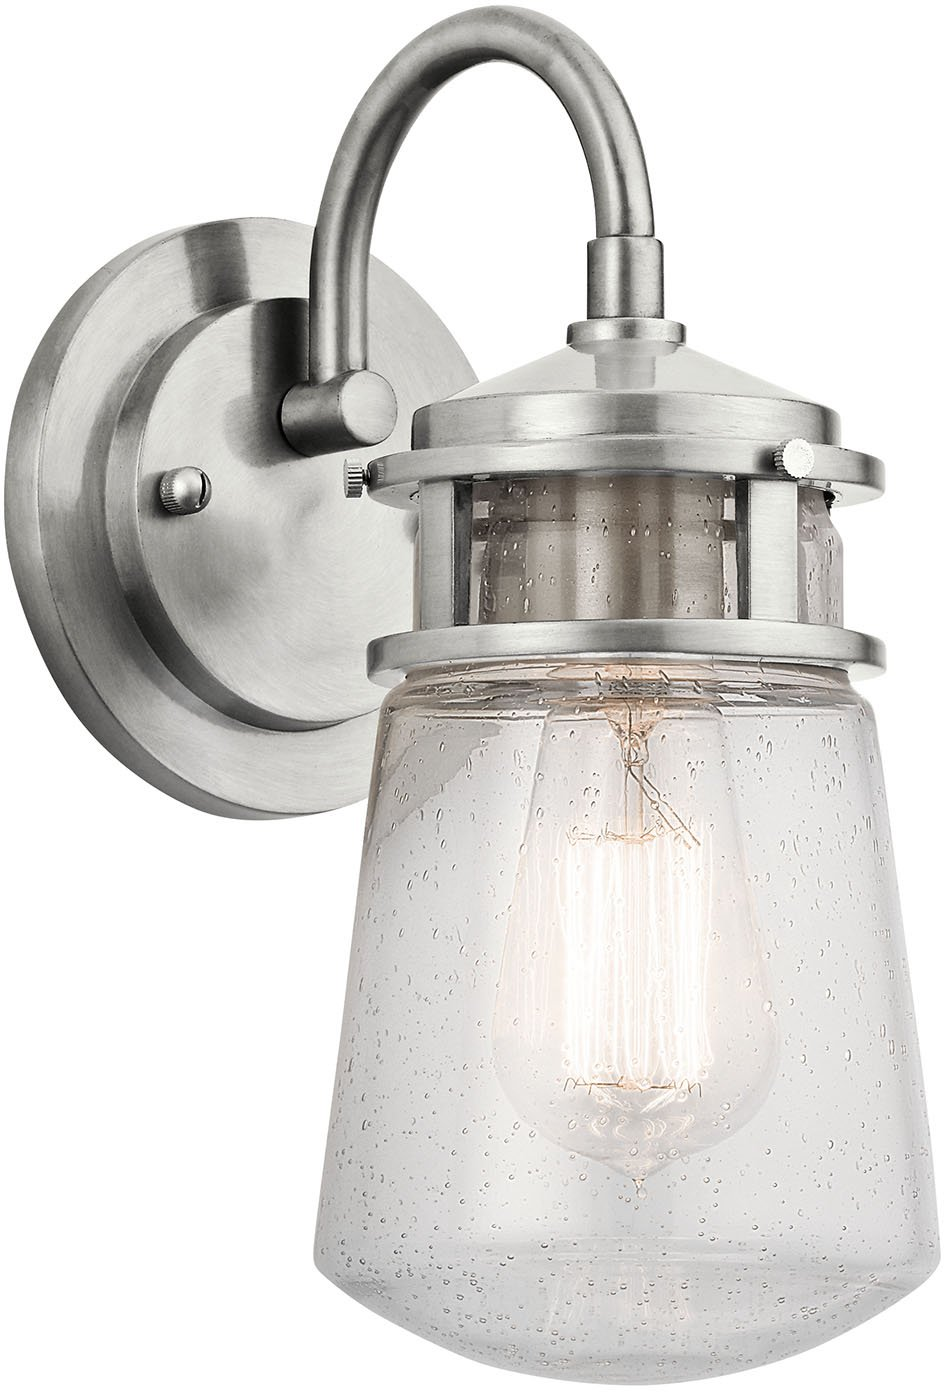 Kichler Lighting 49444AZ Lyndon 1 Light 11 Inch Outdoor Wall Lantern   Architectural Bronze Finish with Clear Seedy Glass   Wall Porch Lights    Amazon comKichler Lighting 49444AZ Lyndon 1 Light 11 Inch Outdoor Wall  . Kichler Lighting Outdoor Sconce. Home Design Ideas